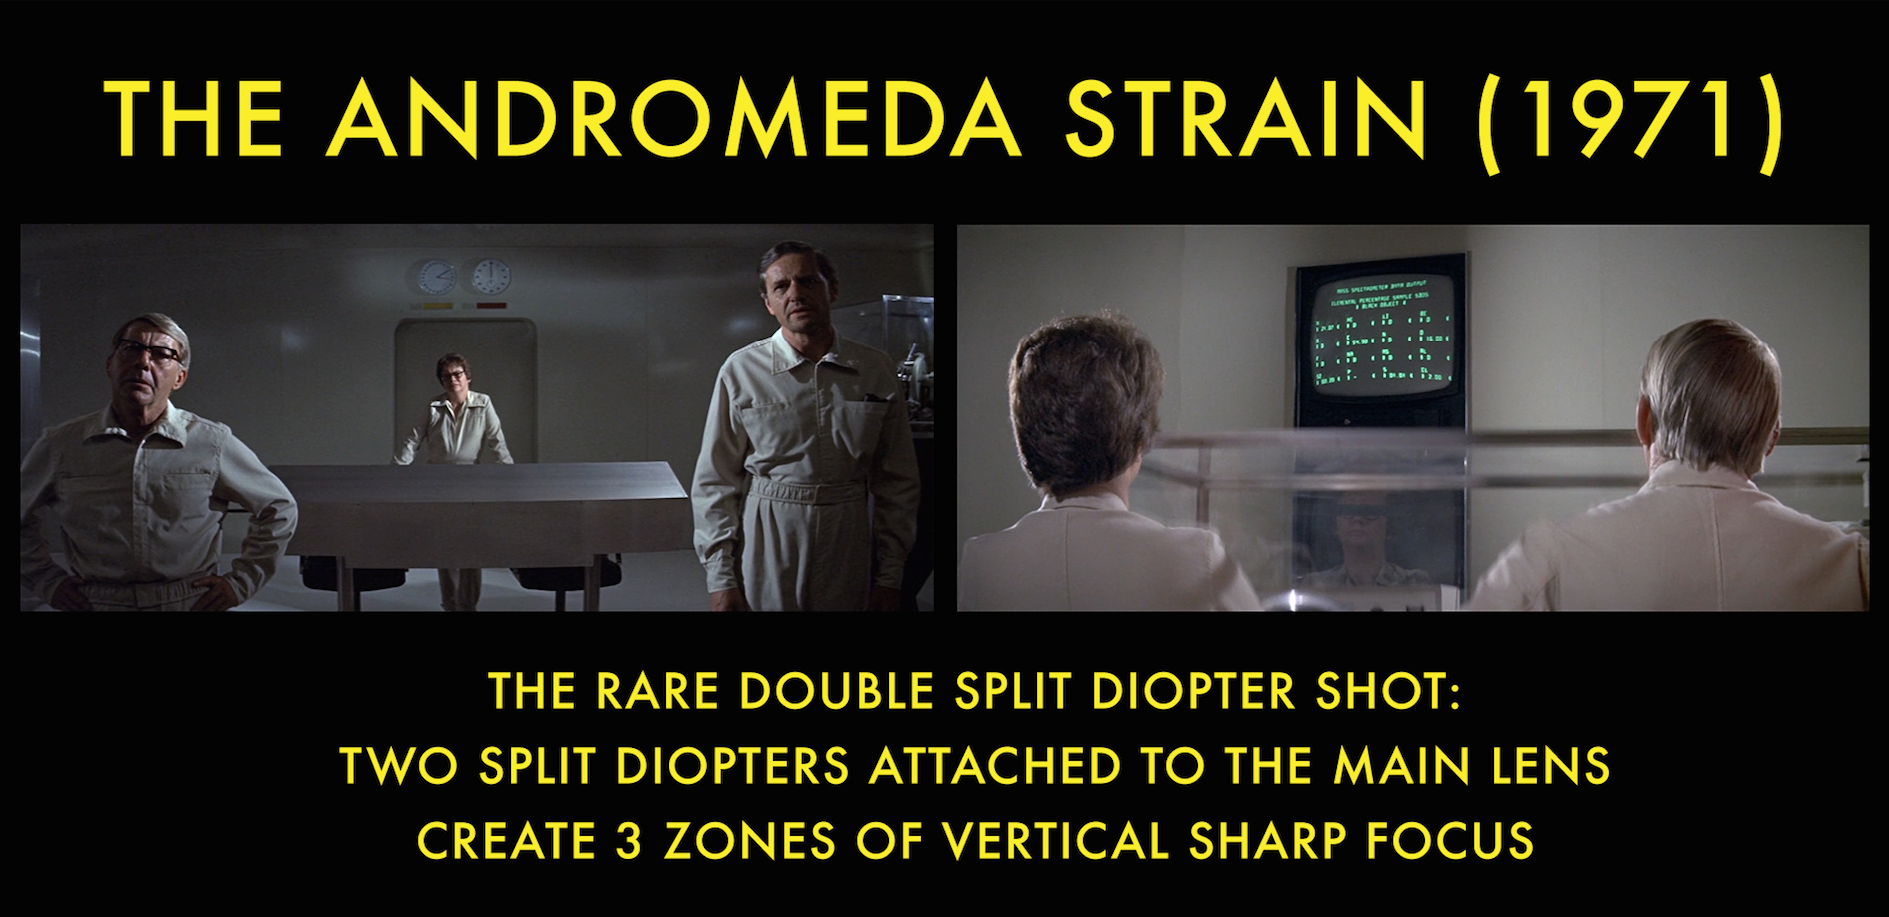 andromeda strain The andromeda strain by crichton, michael and a great selection of similar used, new and collectible books available now at abebookscom.